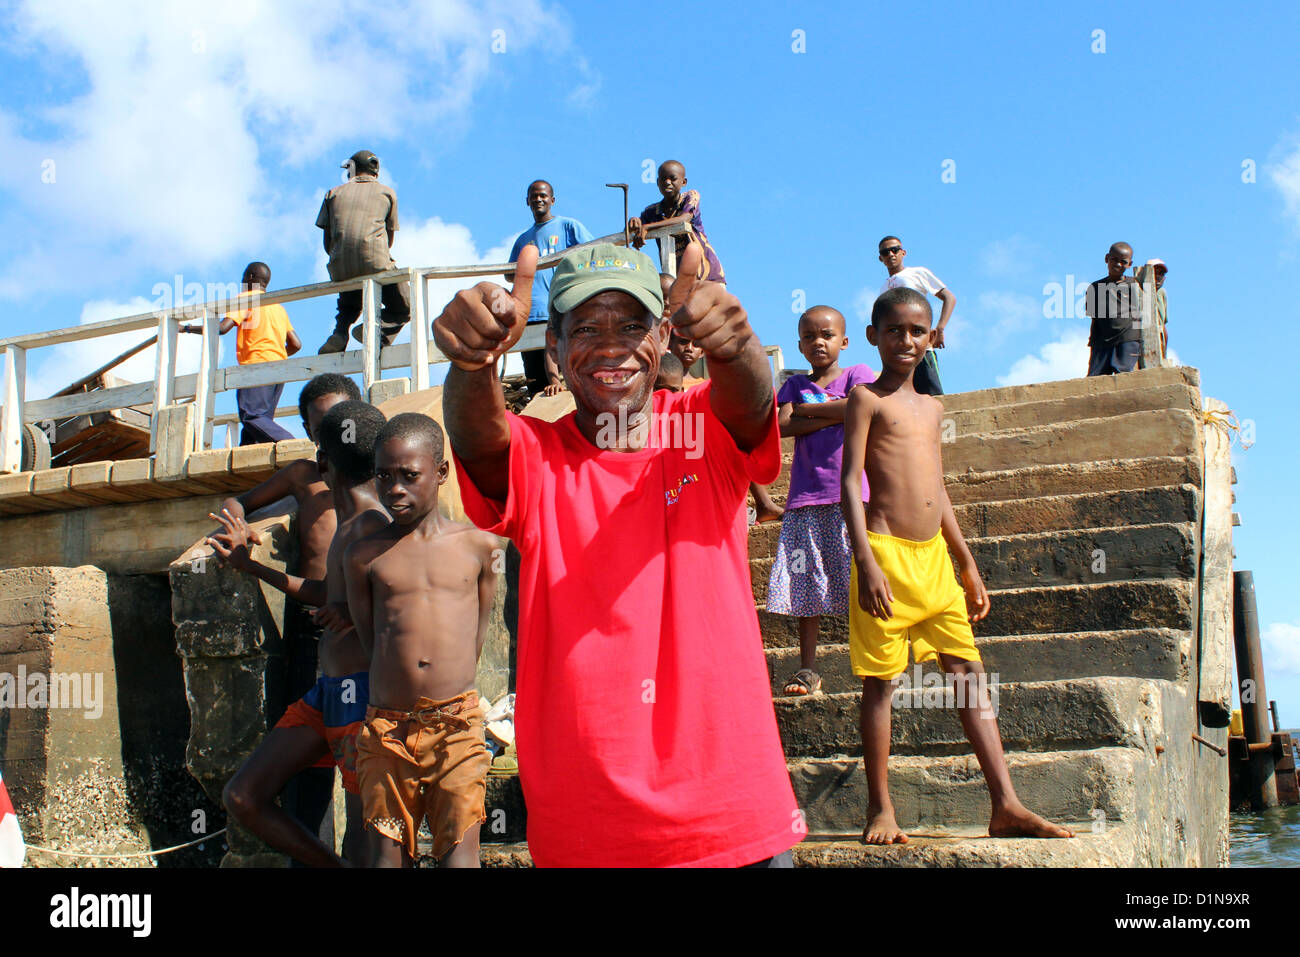 Local man and children on a jetty at Lamu Island, Kenya, East Africa - Stock Image